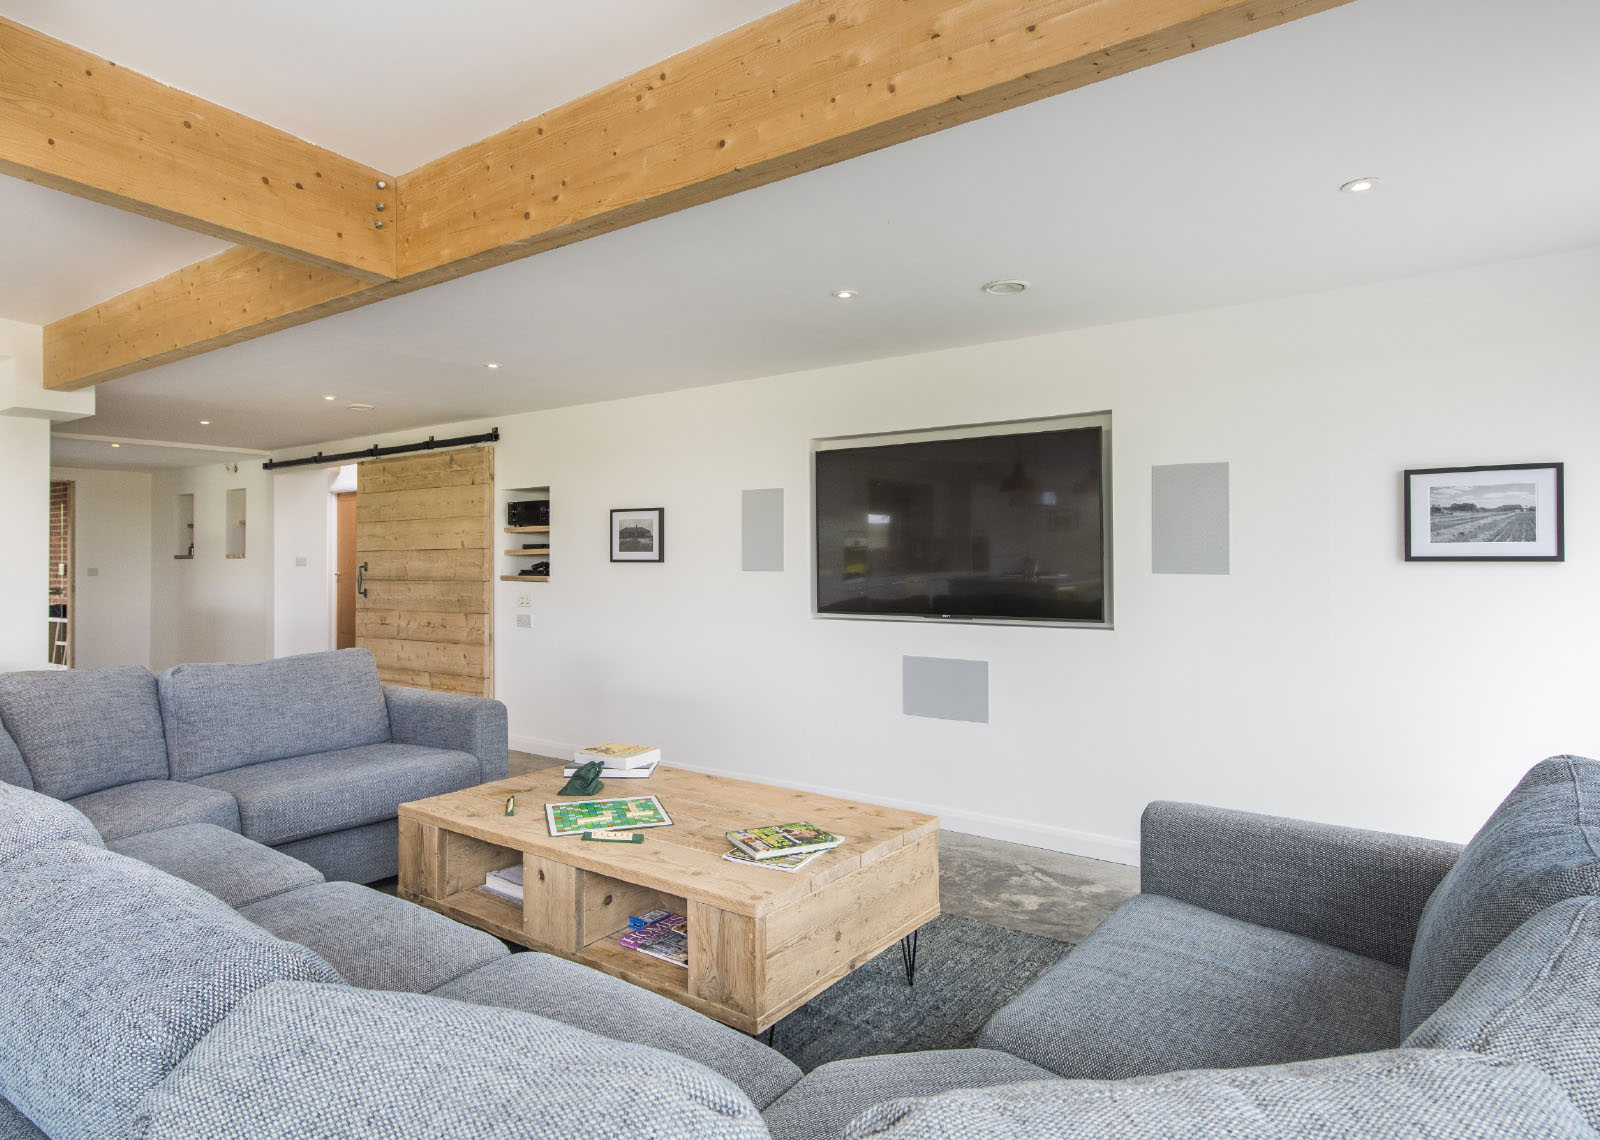 Smarthome Hughes Smart House Wiring For Tv A Member Of The Home Team Who Will Be Your Key Contact Throughout We Firmly Believe That It Is This Partnership To Ensuring